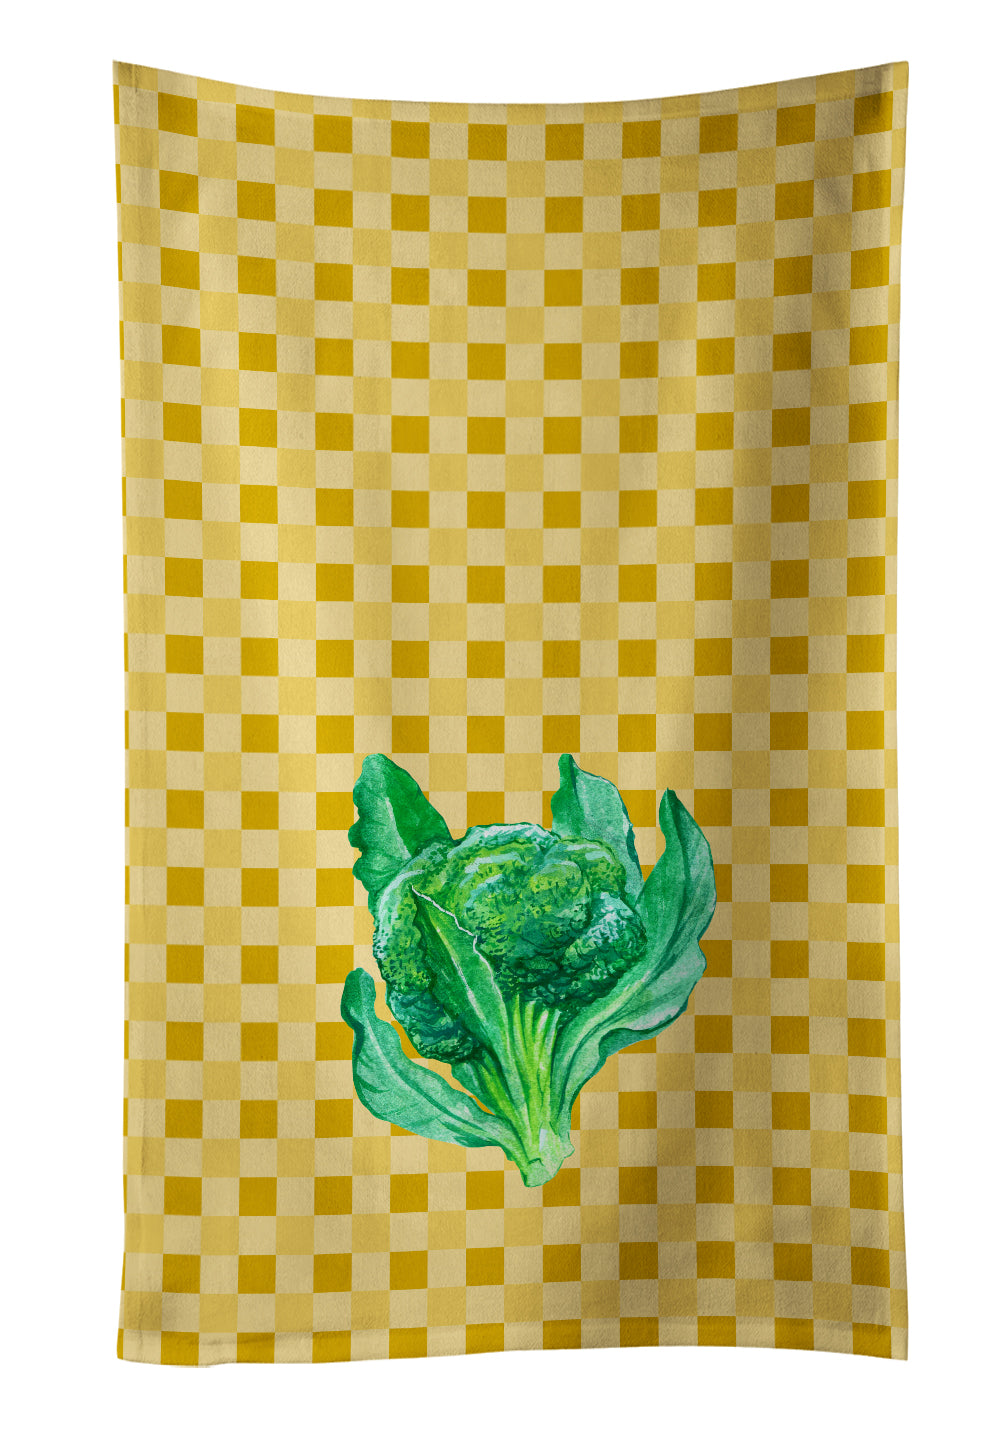 Broccoli on Basketweave Kitchen Towel BB7186KTWL by Caroline's Treasures